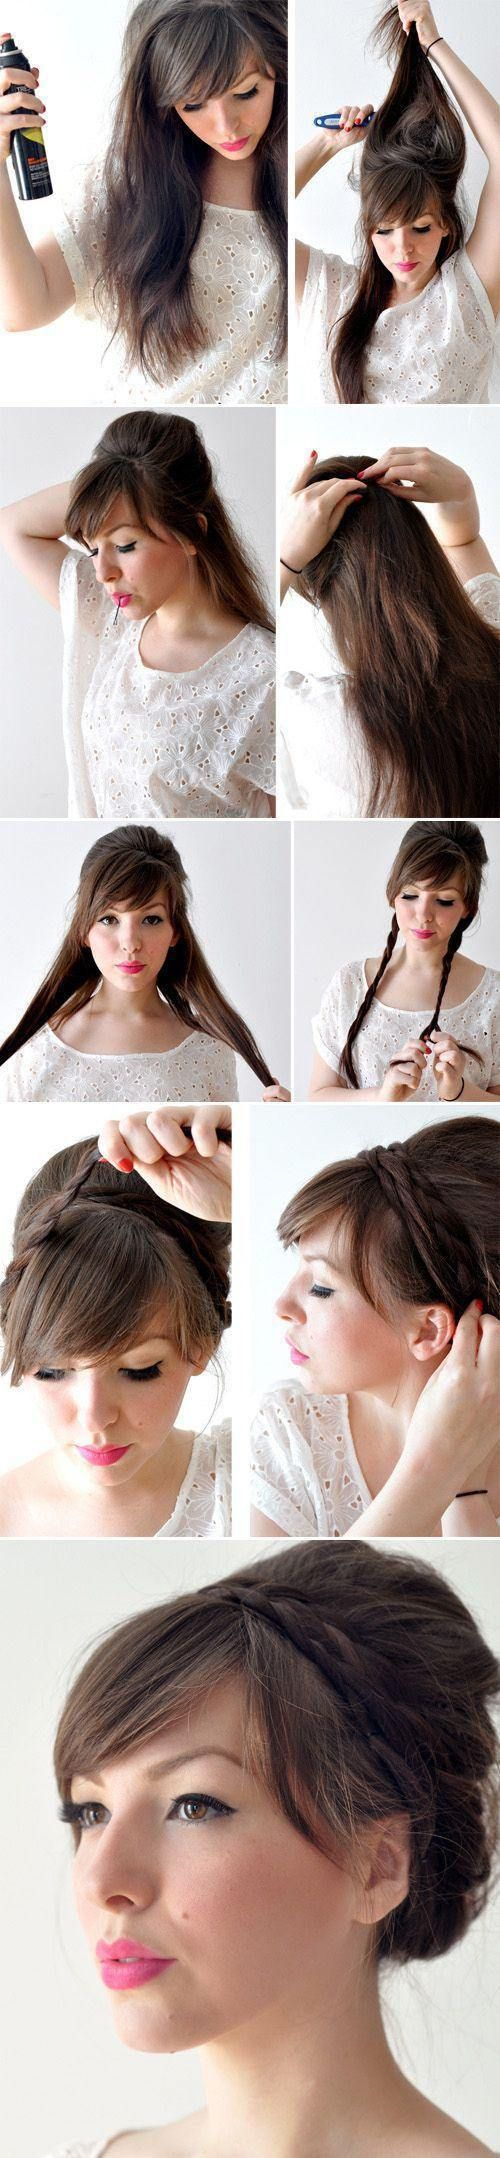 Farewell letter from easy hairstyles hair style and easy